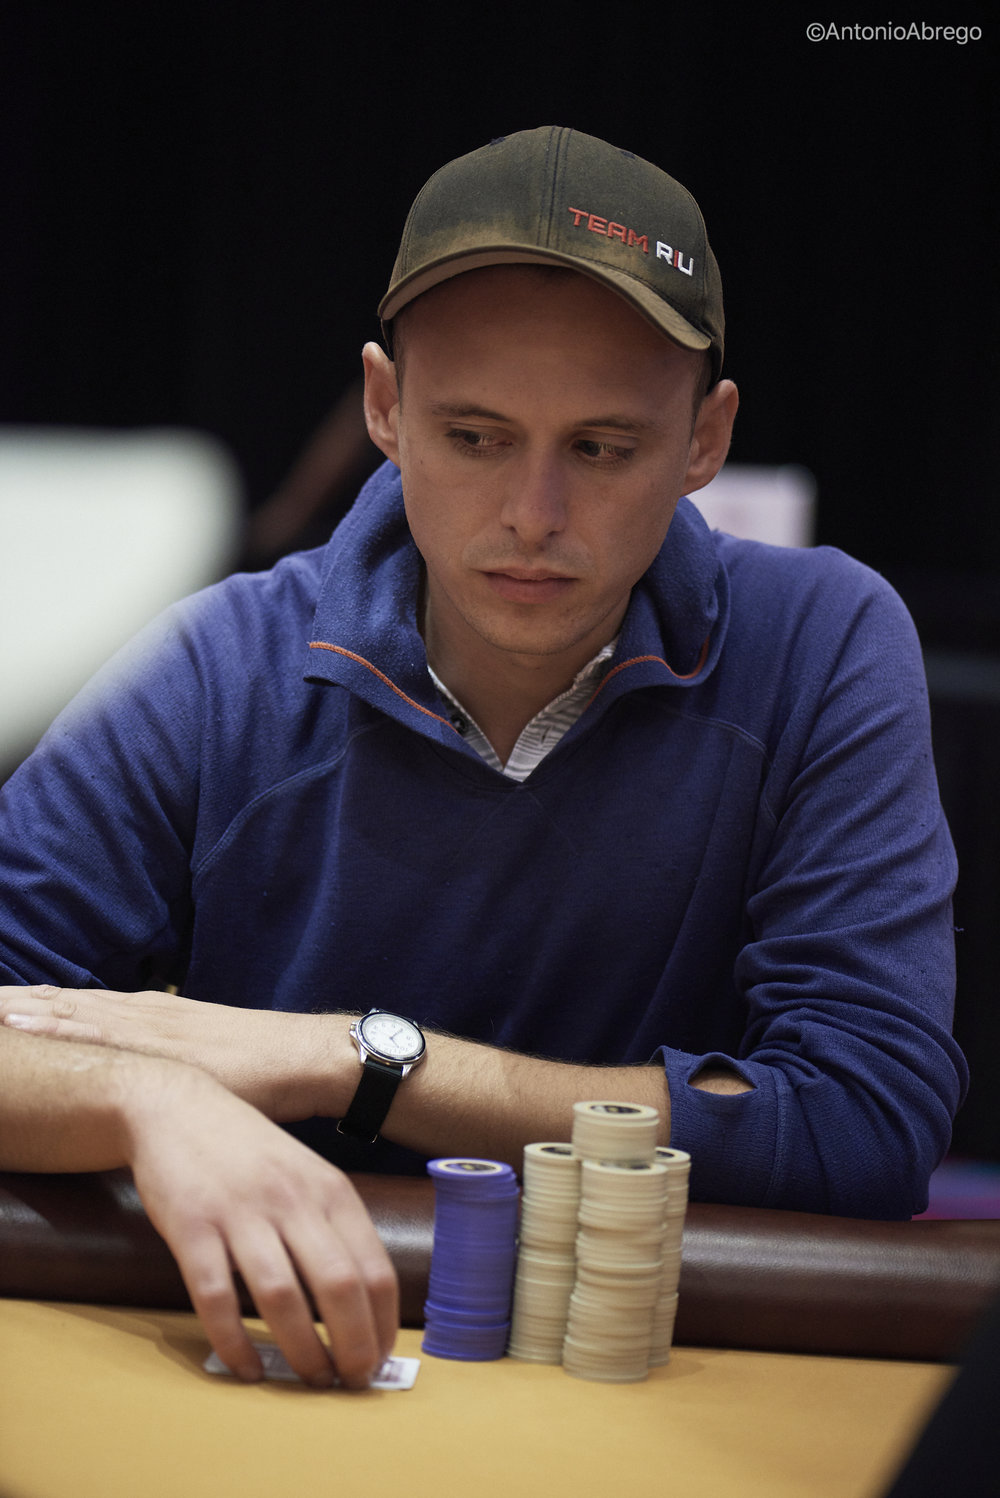 Aaron Schoch bursts the bubble with quad fives